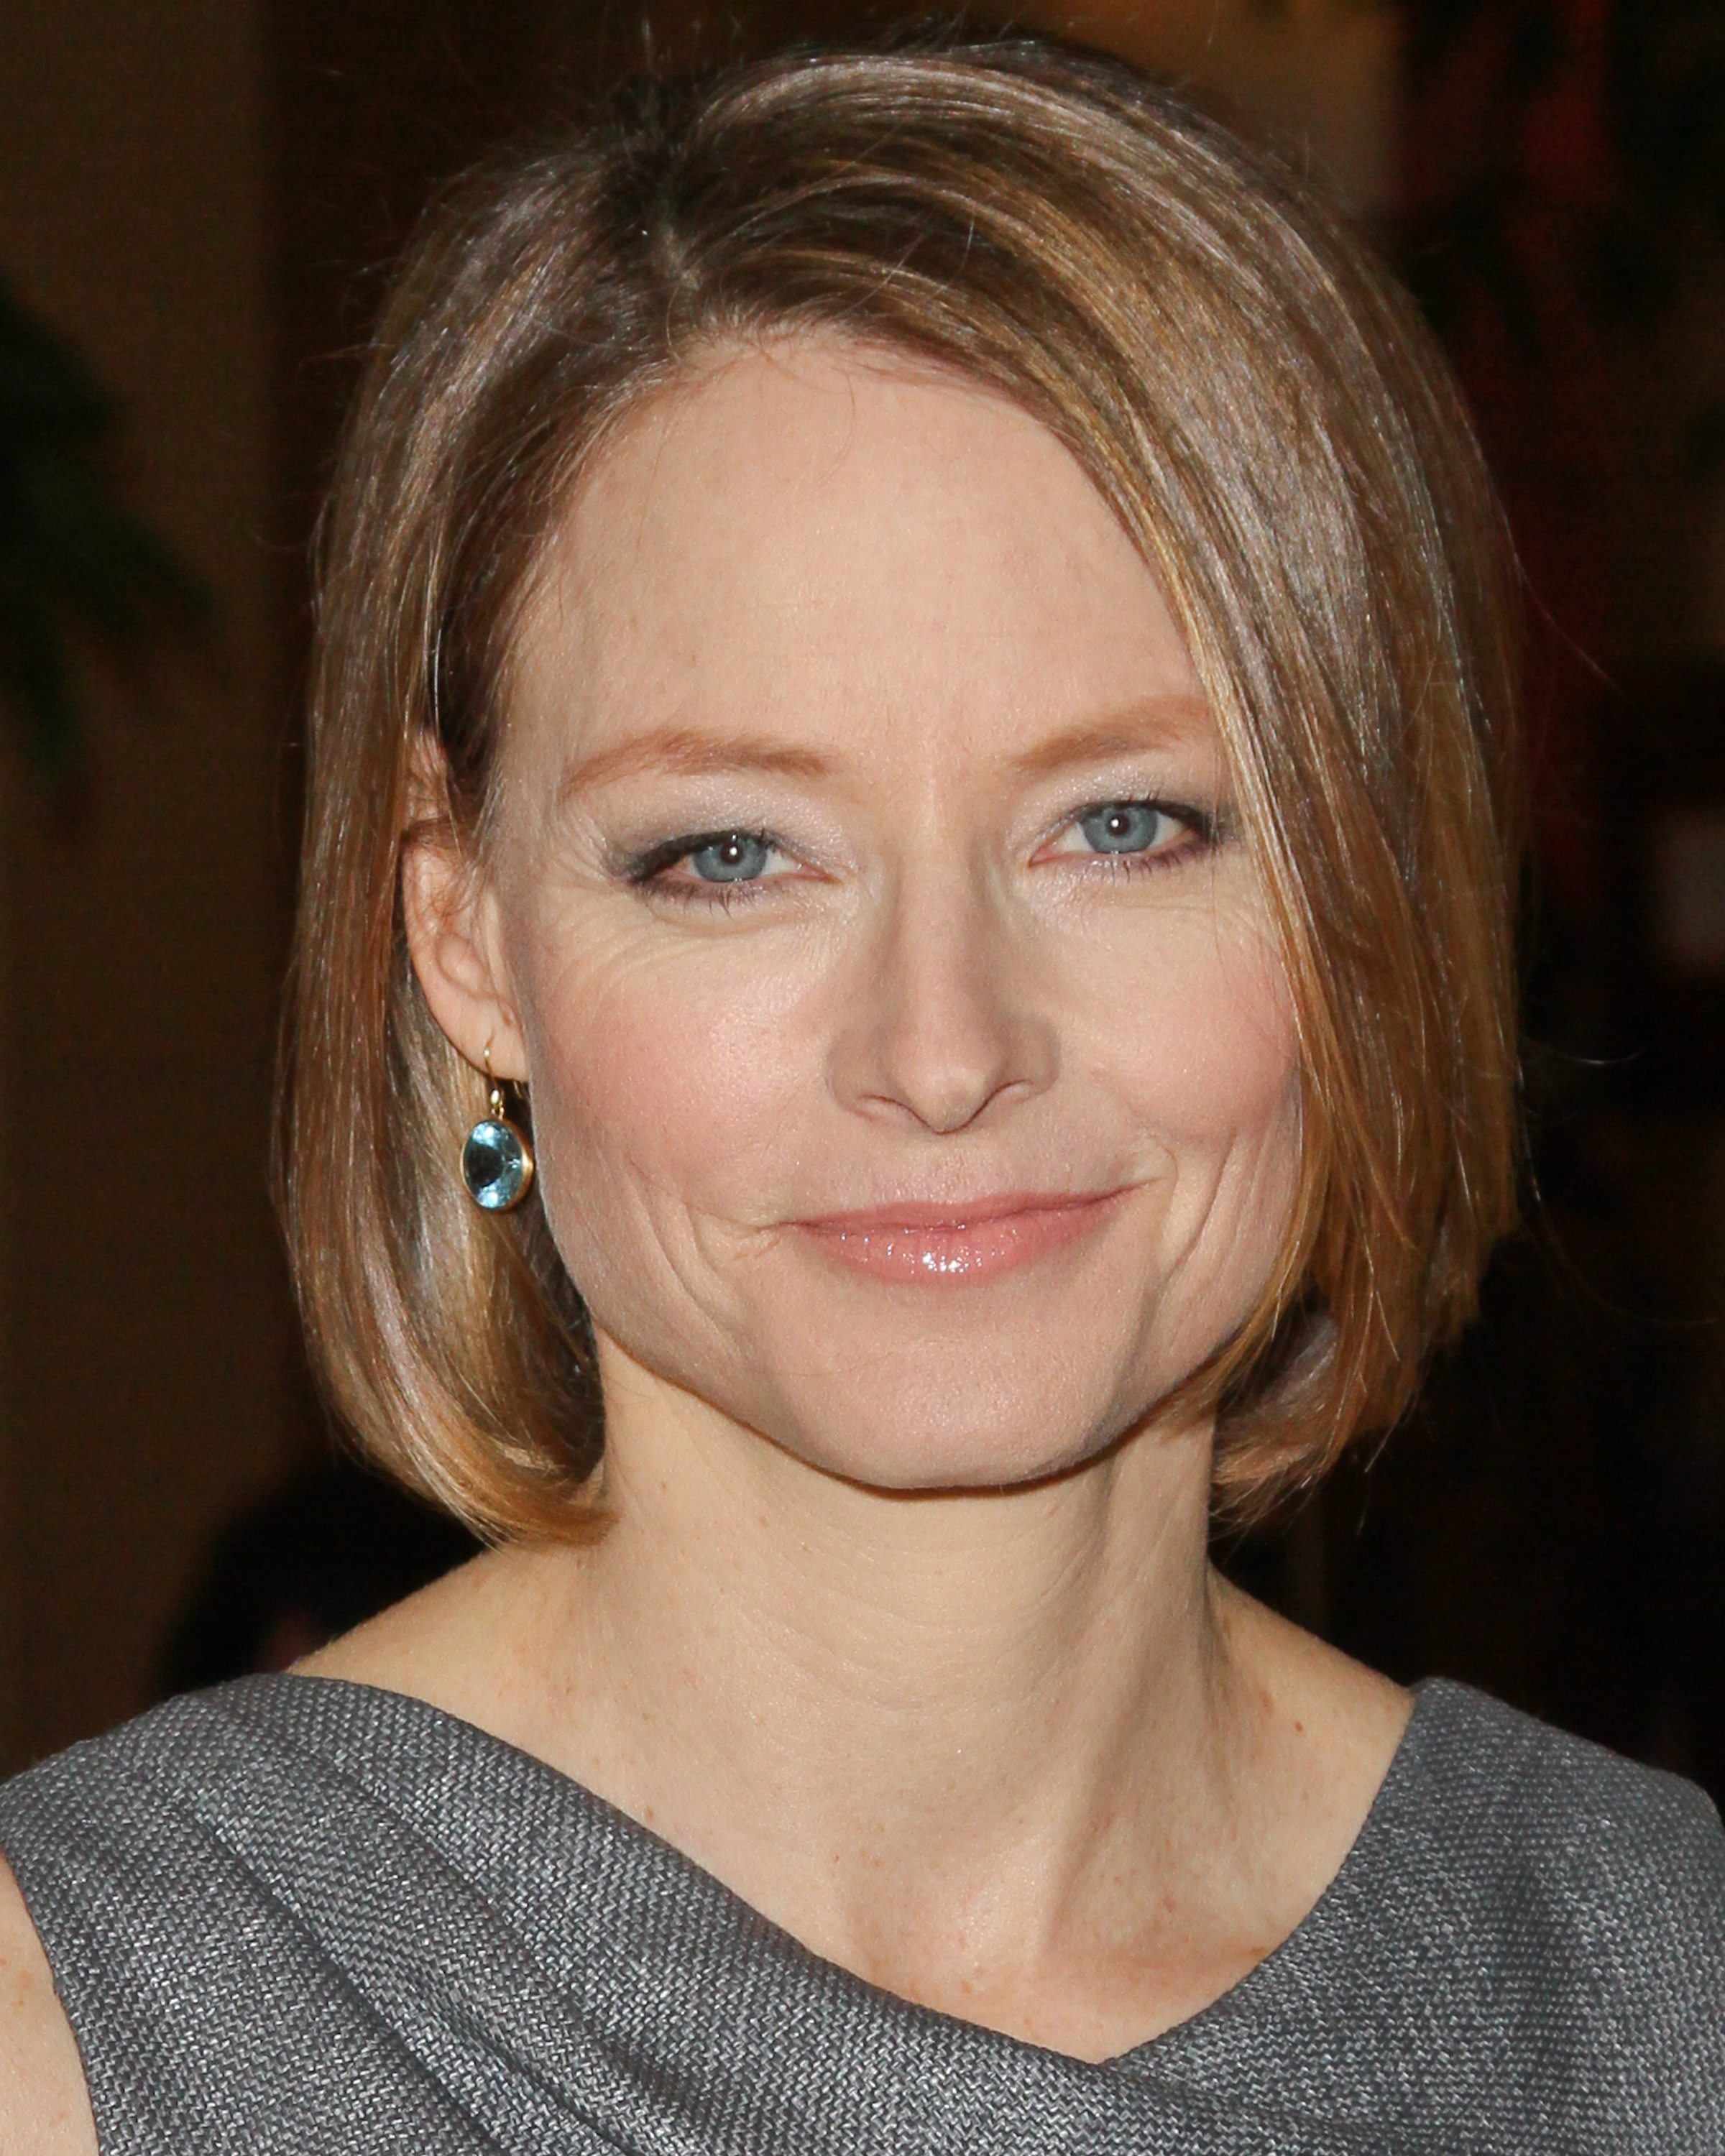 BEVERLY HILLS, CA - FEBRUARY 24: Actress Jodie Foster attends The International Cinematographers Guild's 49th Annual Publicists Awards Luncheon at The Beverly Hilton Hotel on February 24, 2012 in Beverly Hills, California. (Photo by Paul Archuleta/FilmMagic)